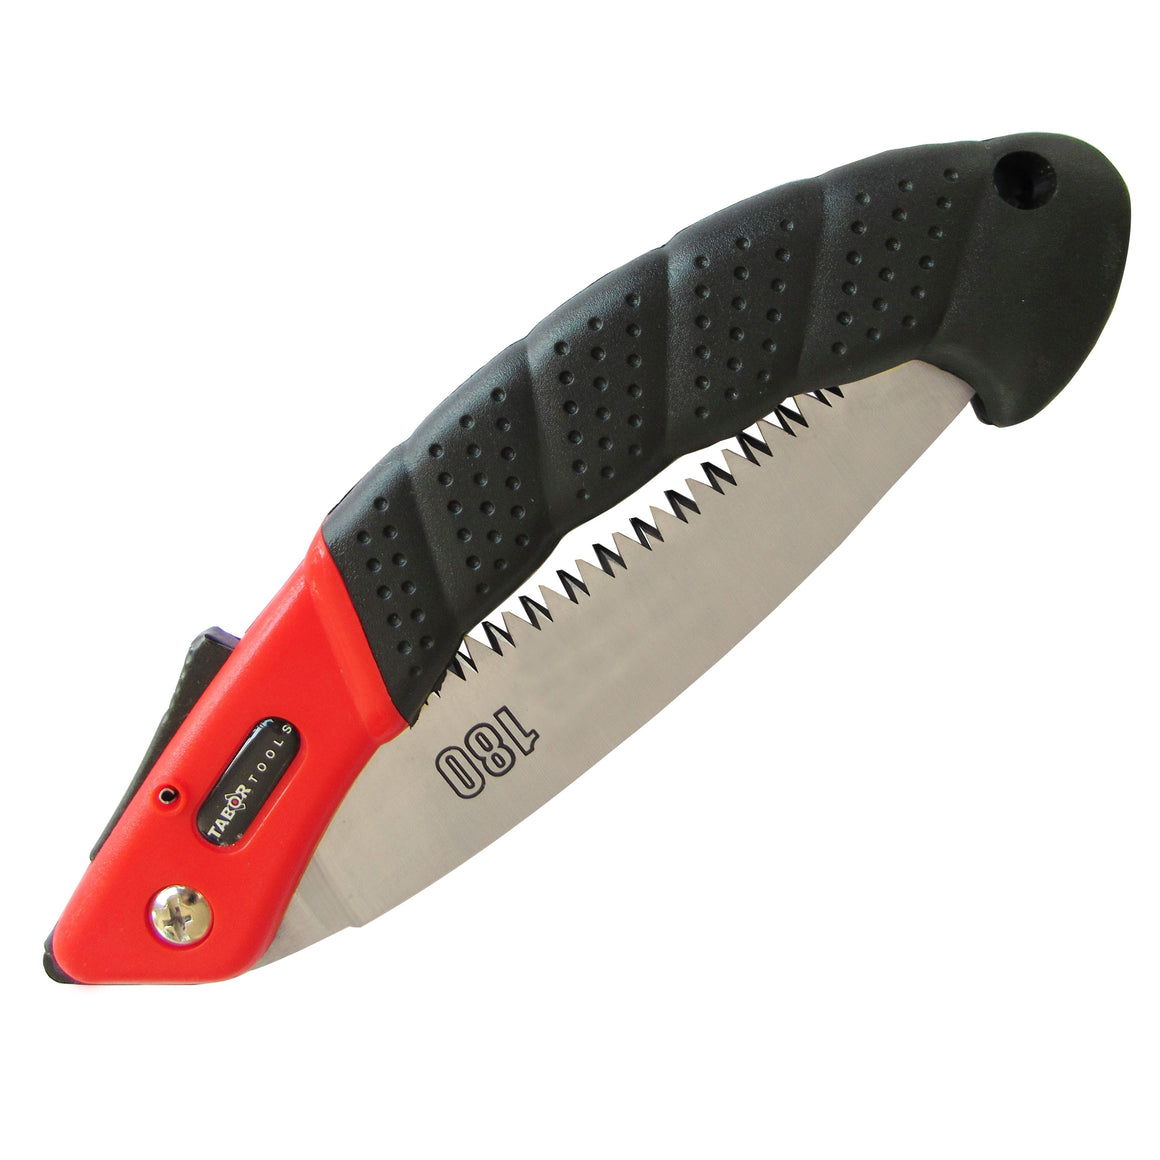 TABOR TOOLS TTS25A Folding Saw with Curved Blade and Rugged Grip Handle